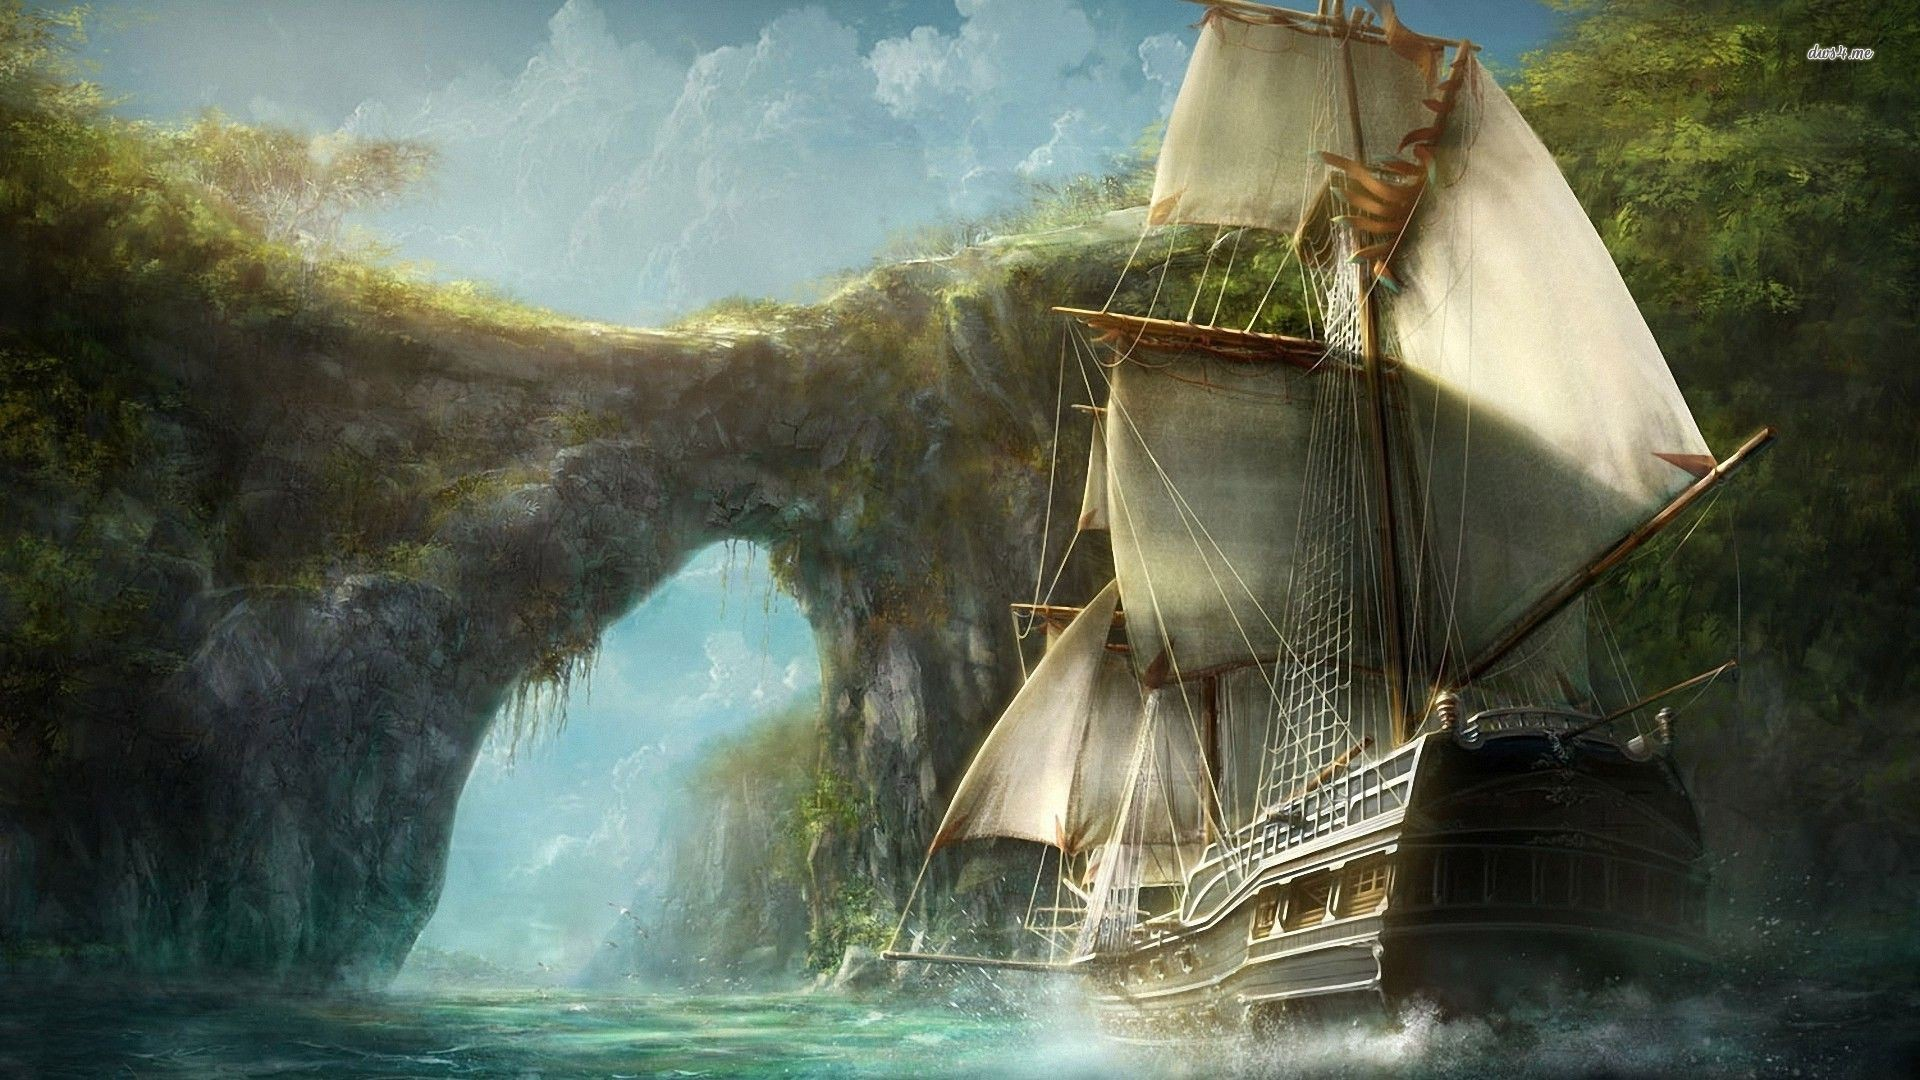 1920x1080 Ship Fantasy Wallpapers | WallpapersIn4k.net